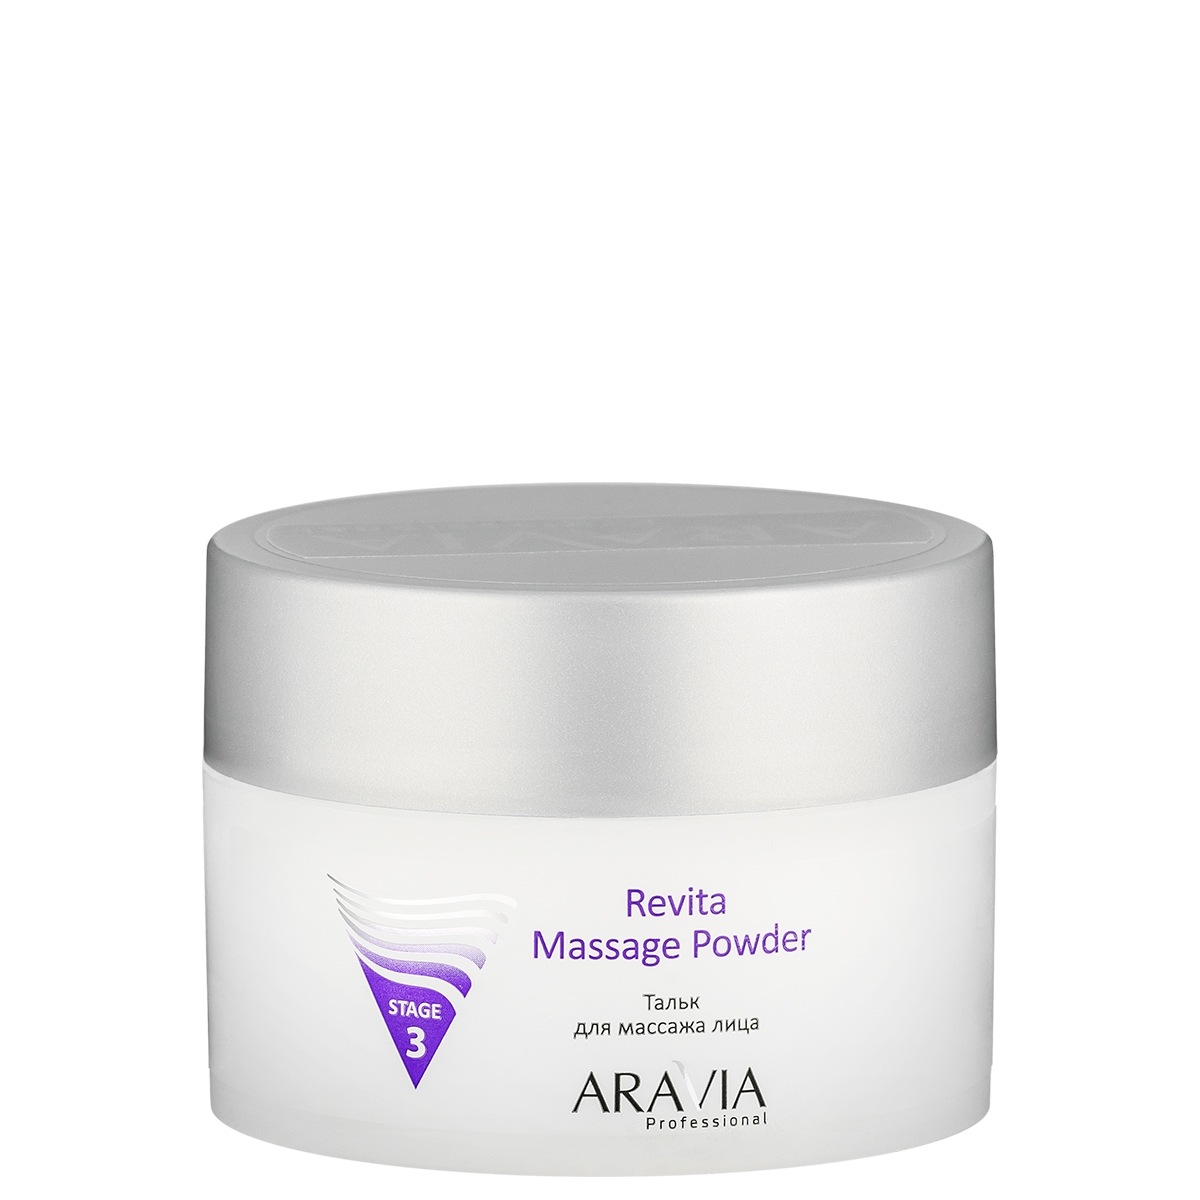 ARAVIA Тальк Revita Massage Powder для Массажа Лица, 150мл